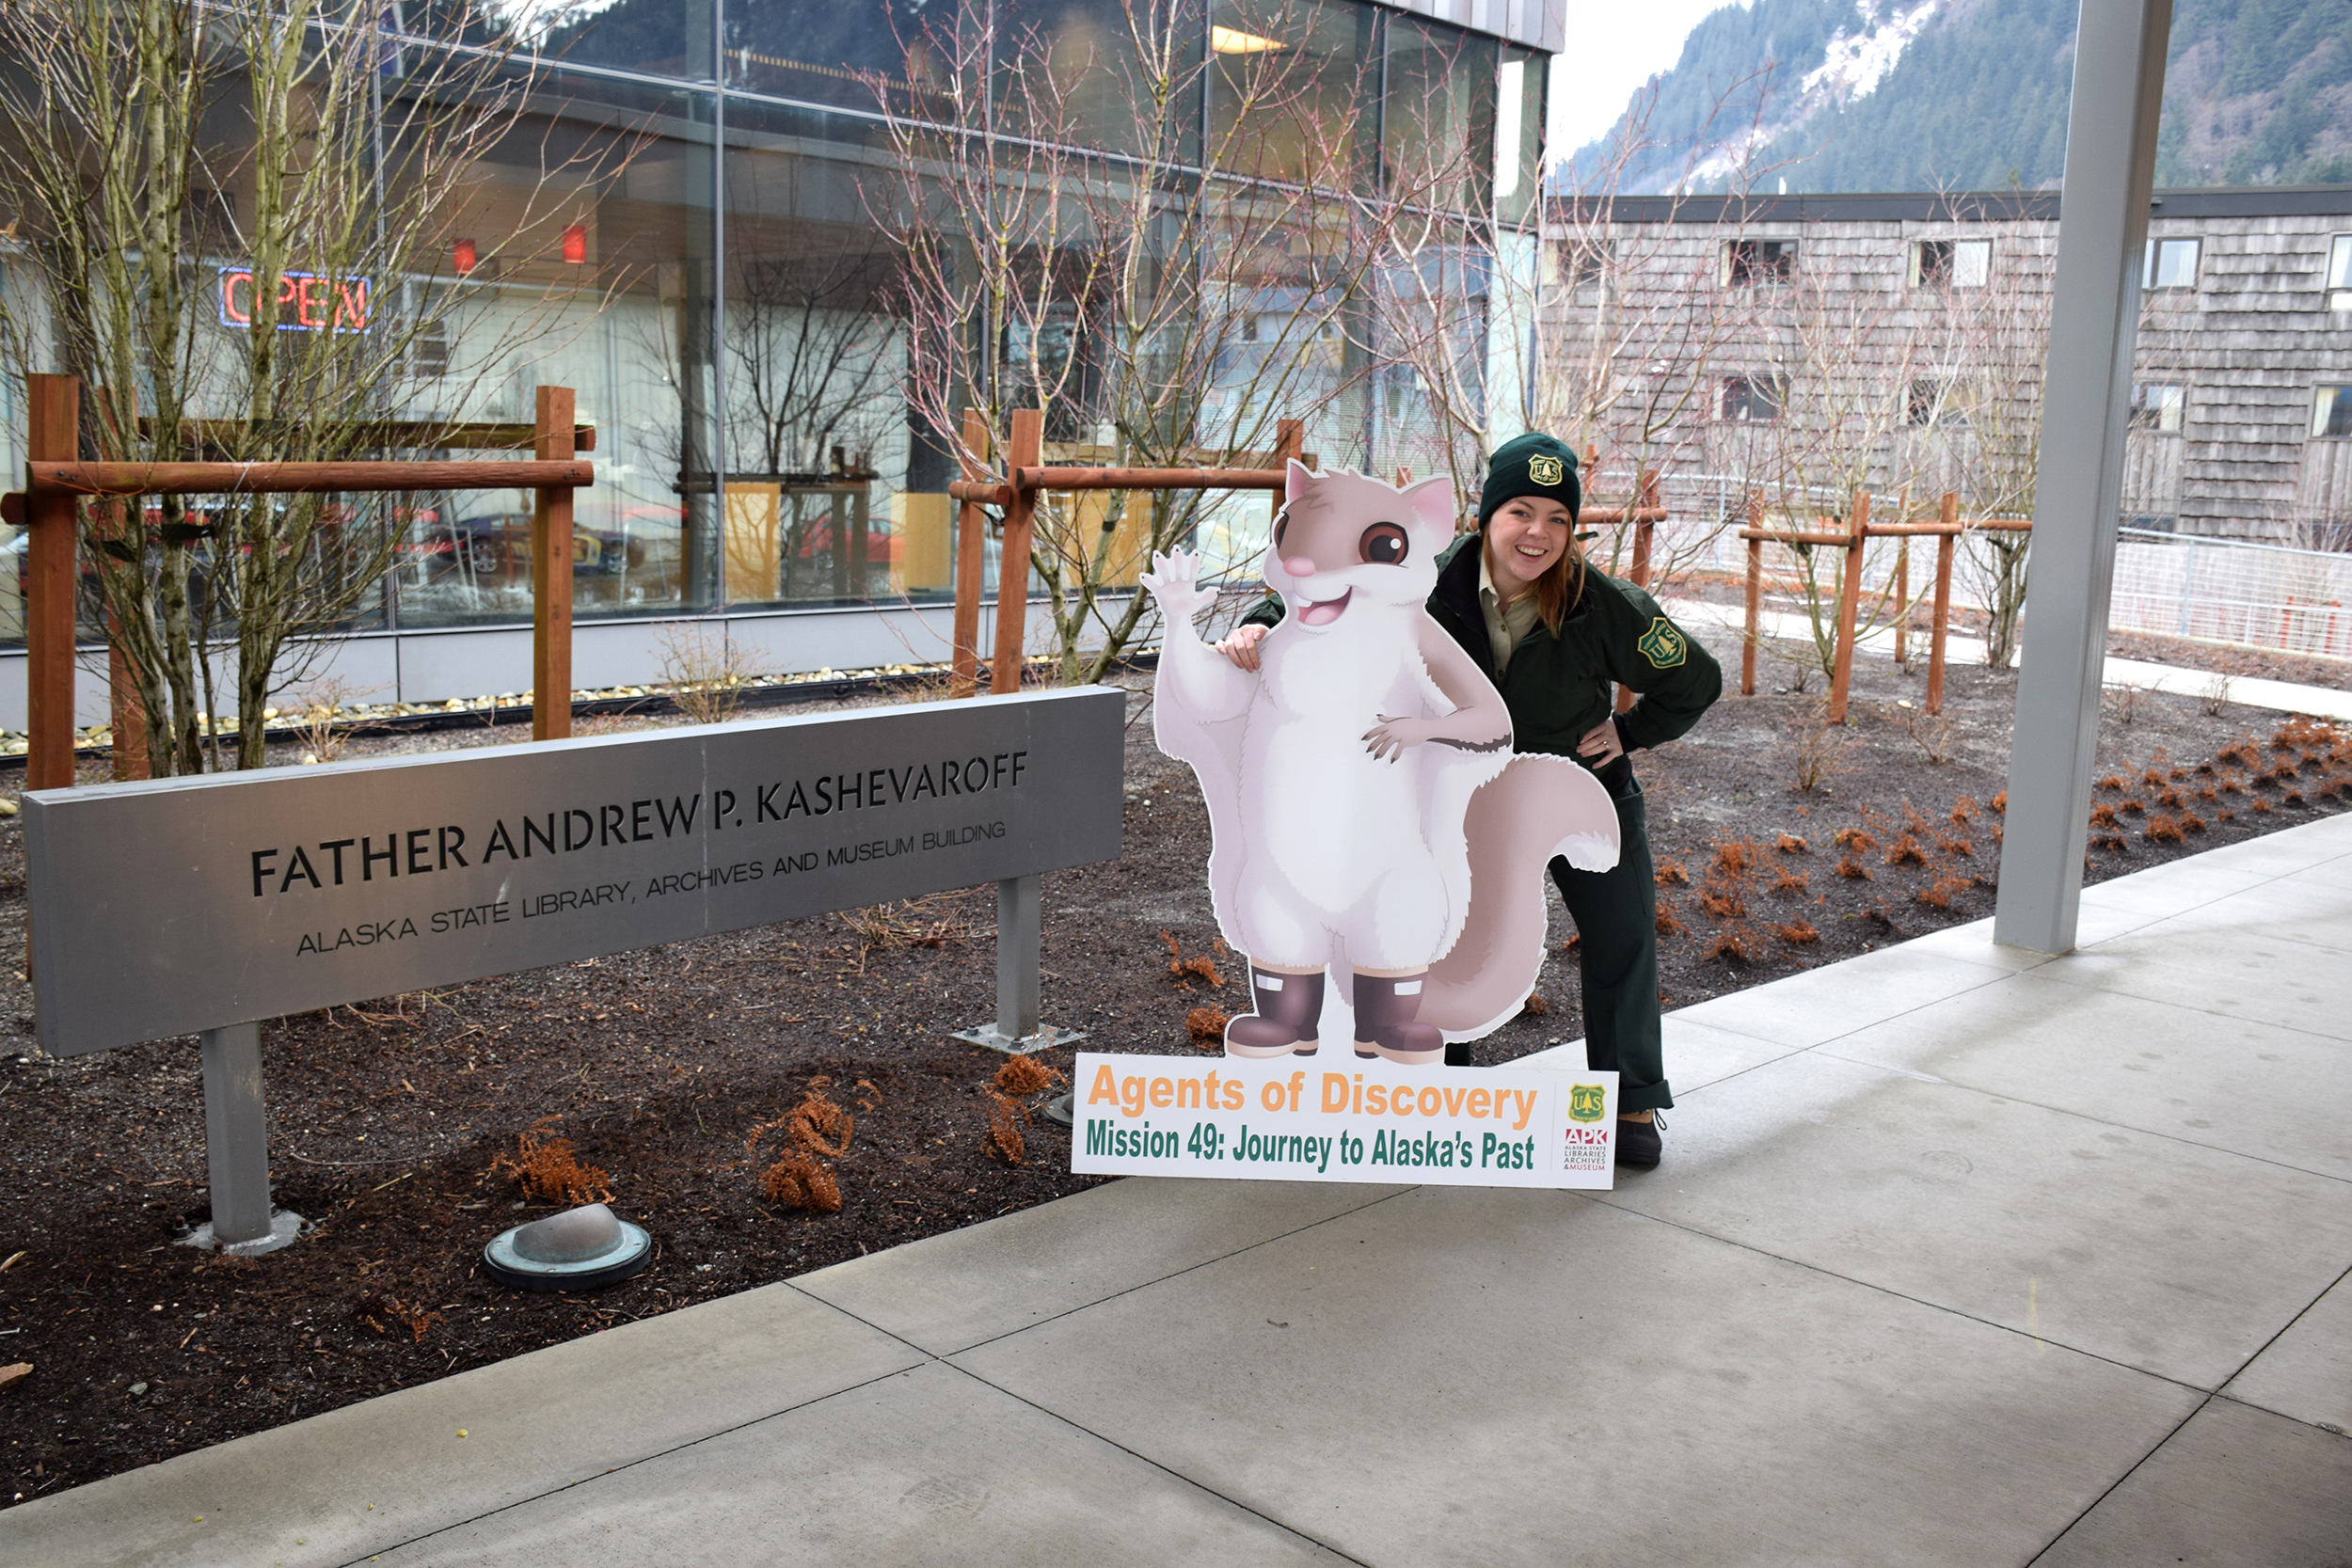 Photo: Jessi Warmbrodt poses with cardboard cut-out of northern flying squirrel.